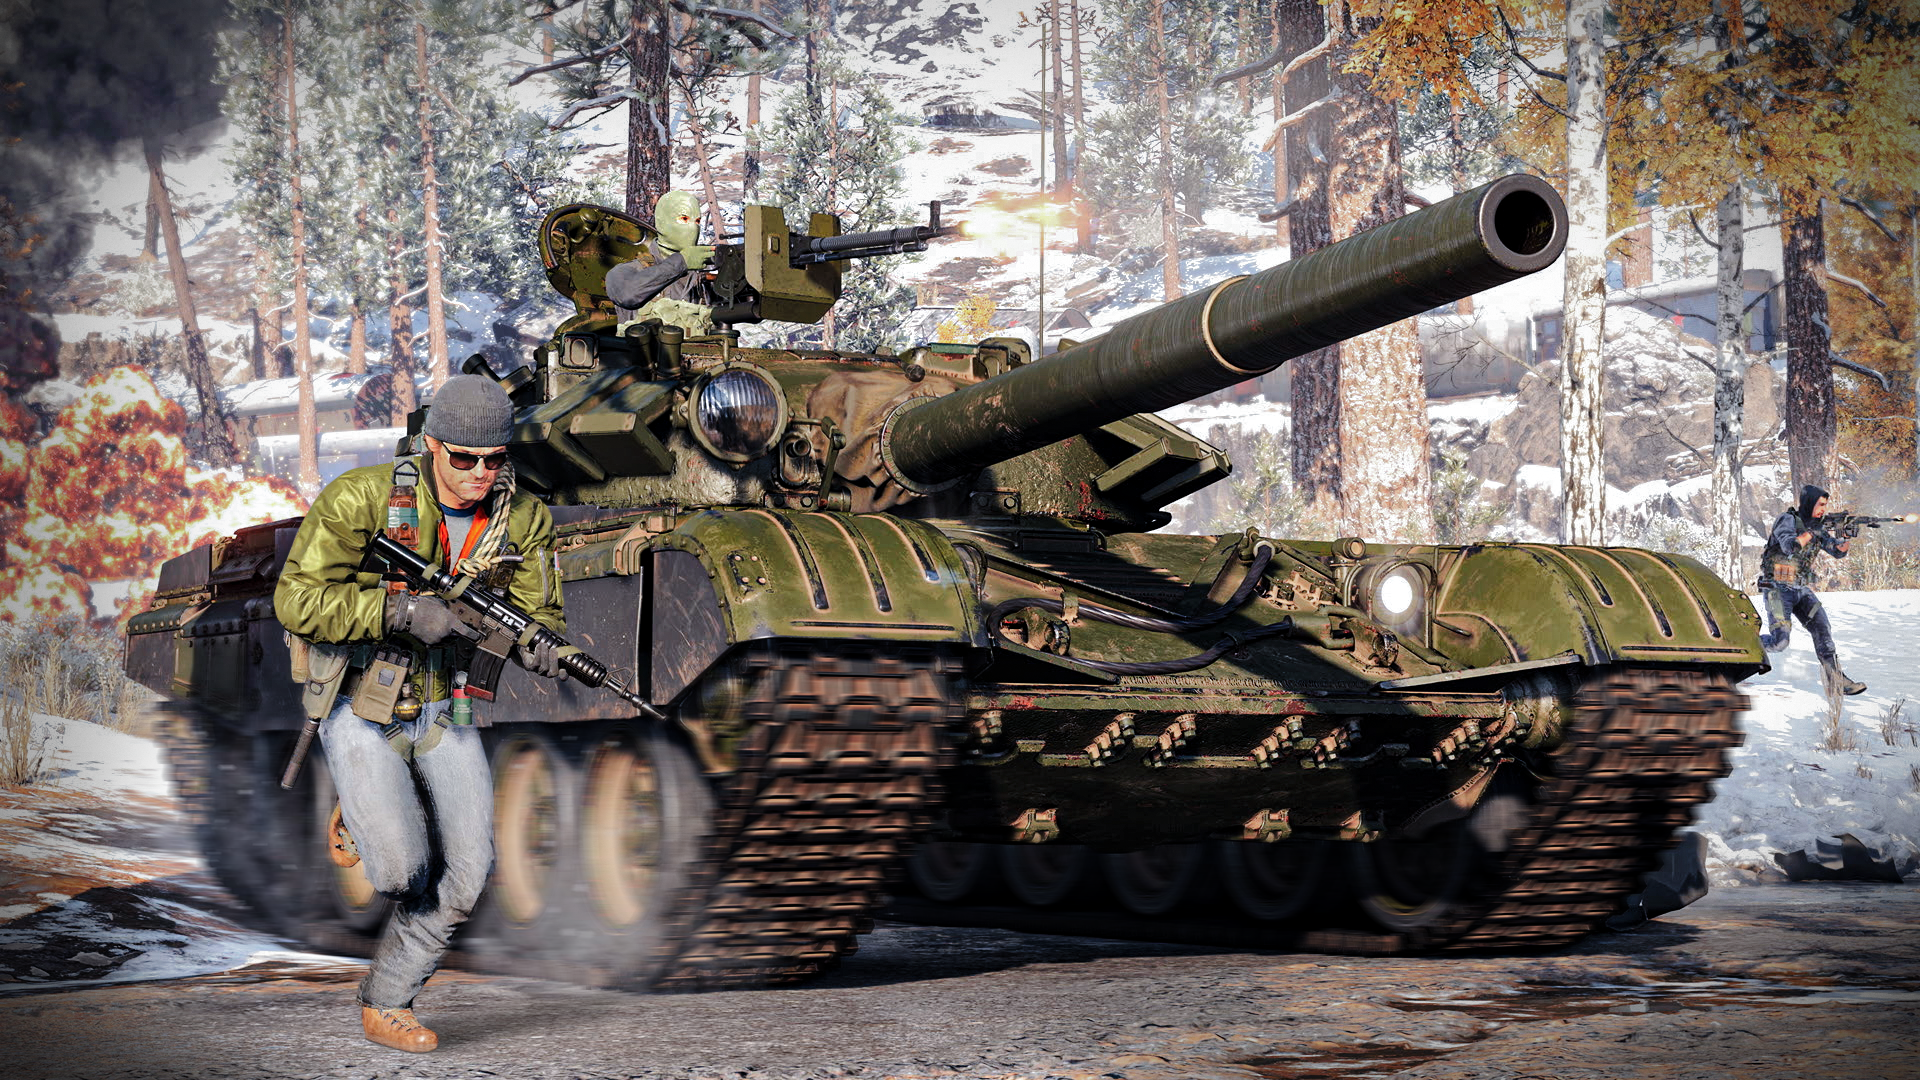 Soldiers surrounding a tank in Call of Duty: 現代戰爭》的所有最新消息。